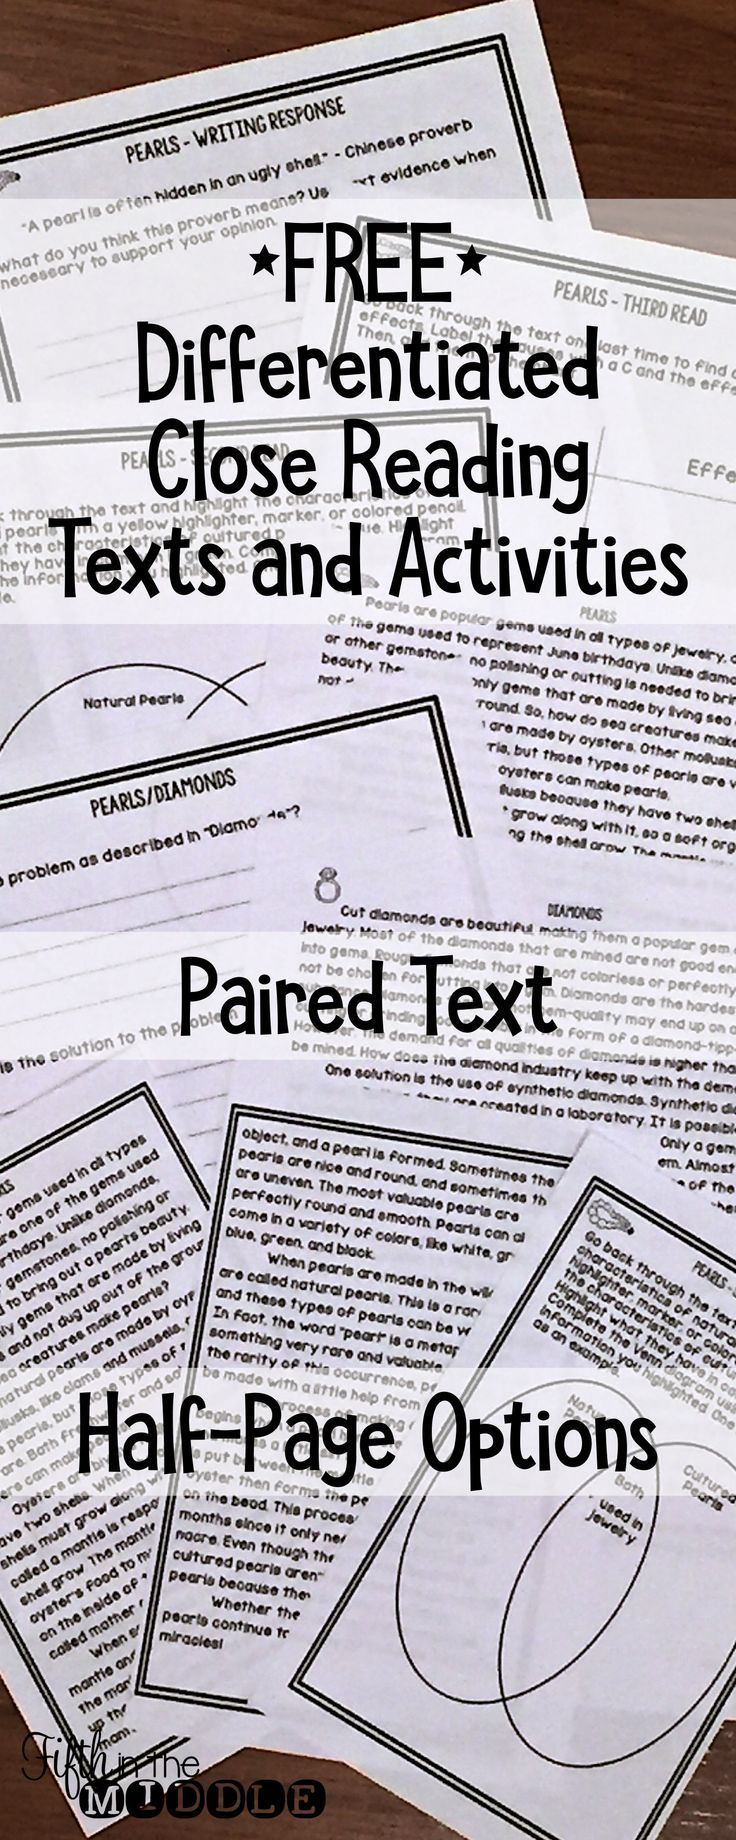 Free Pearls Close Reading Comprehension Passages And Questions Reading Comprehension Passages Comprehension Passage Close Reading Comprehension [ 1840 x 736 Pixel ]